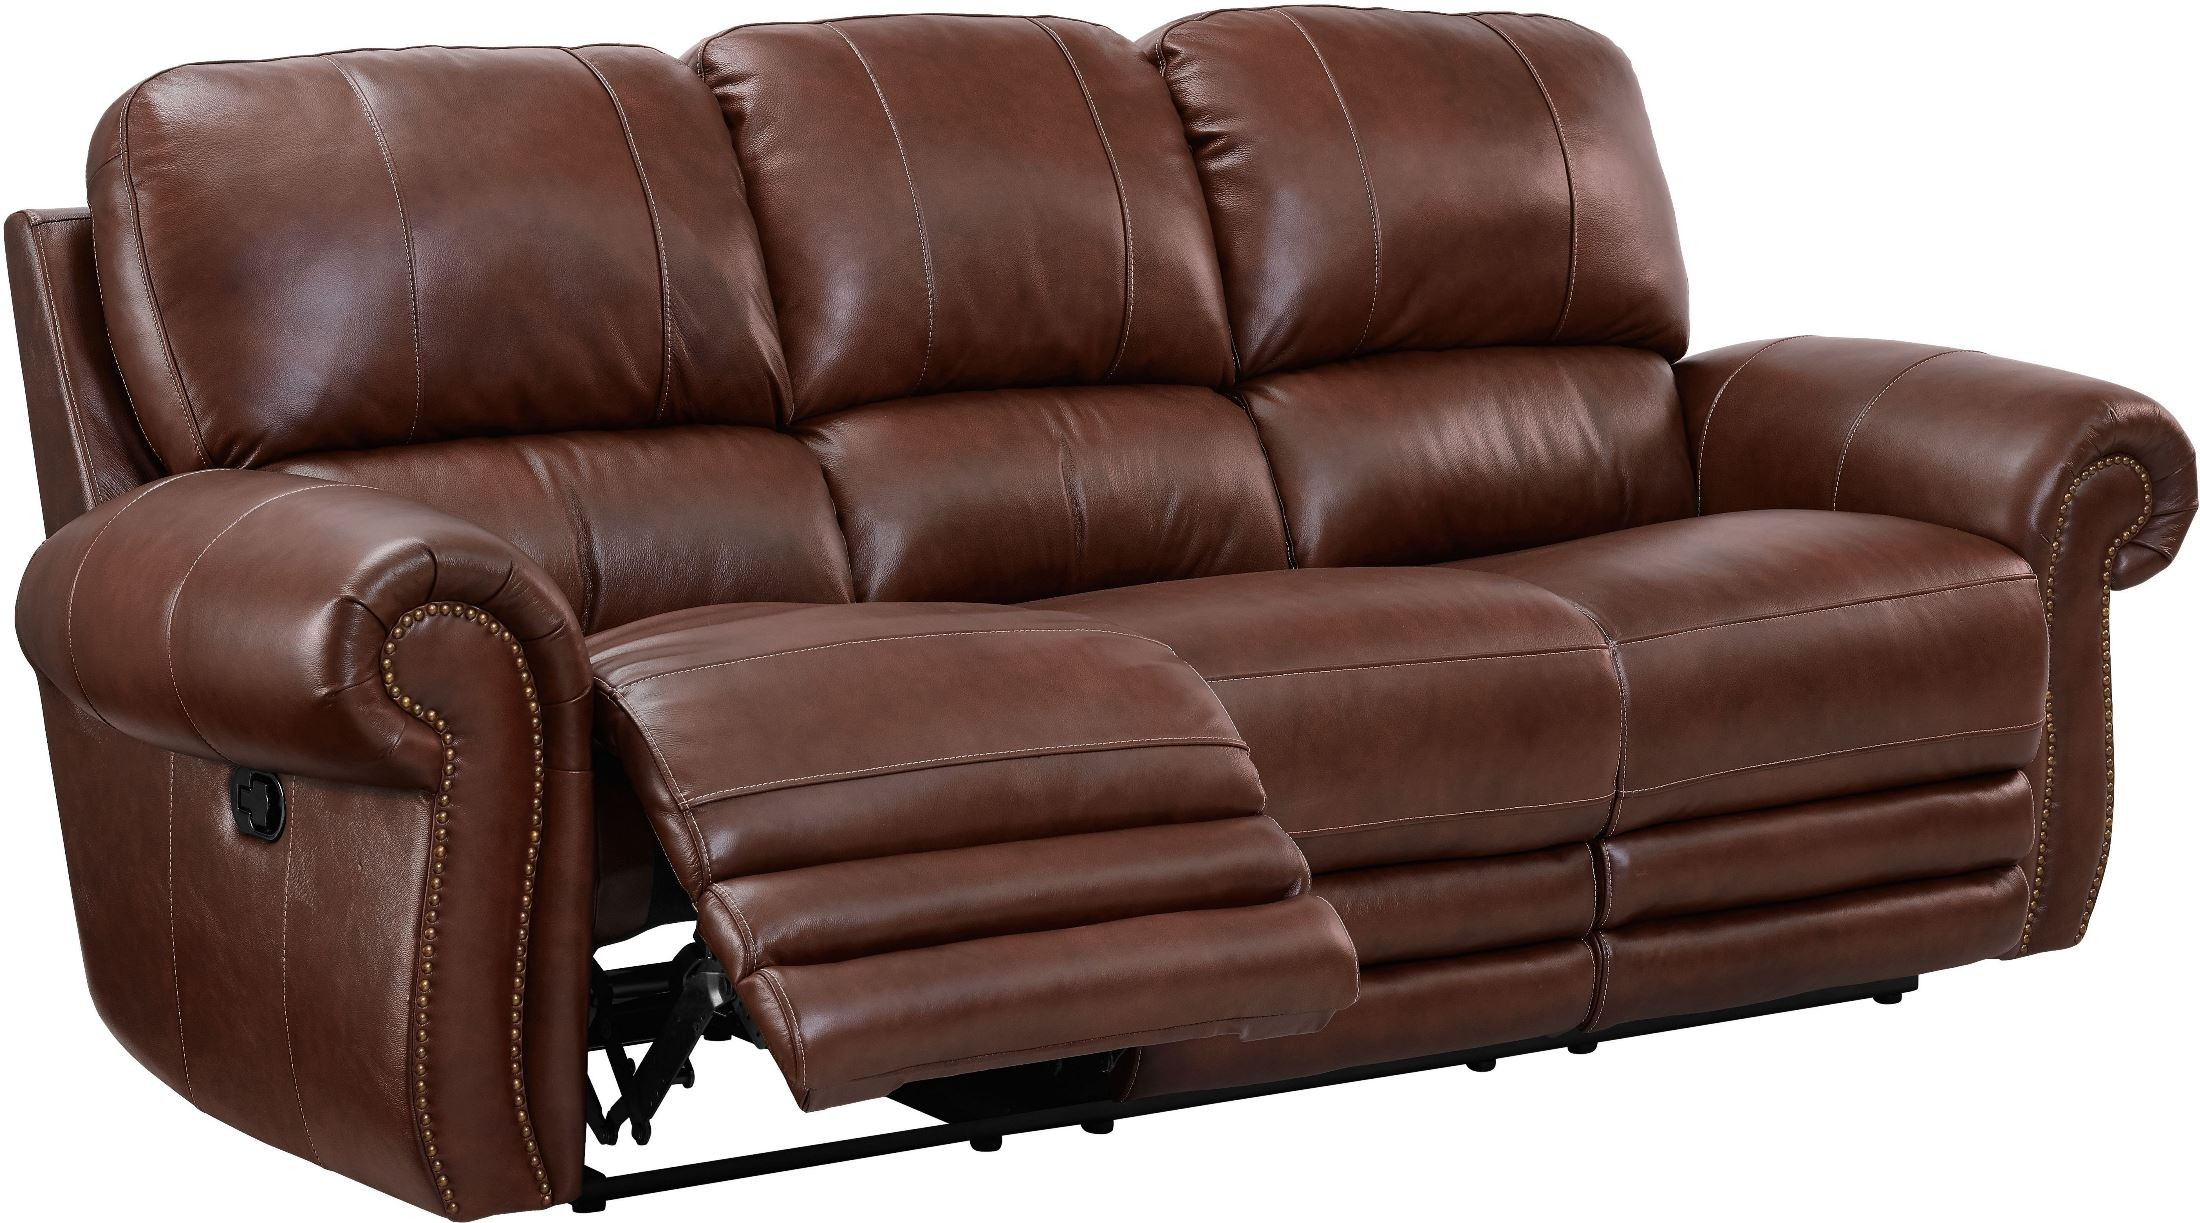 Rossi Light Brown Power Reclining Sofa from New Classic